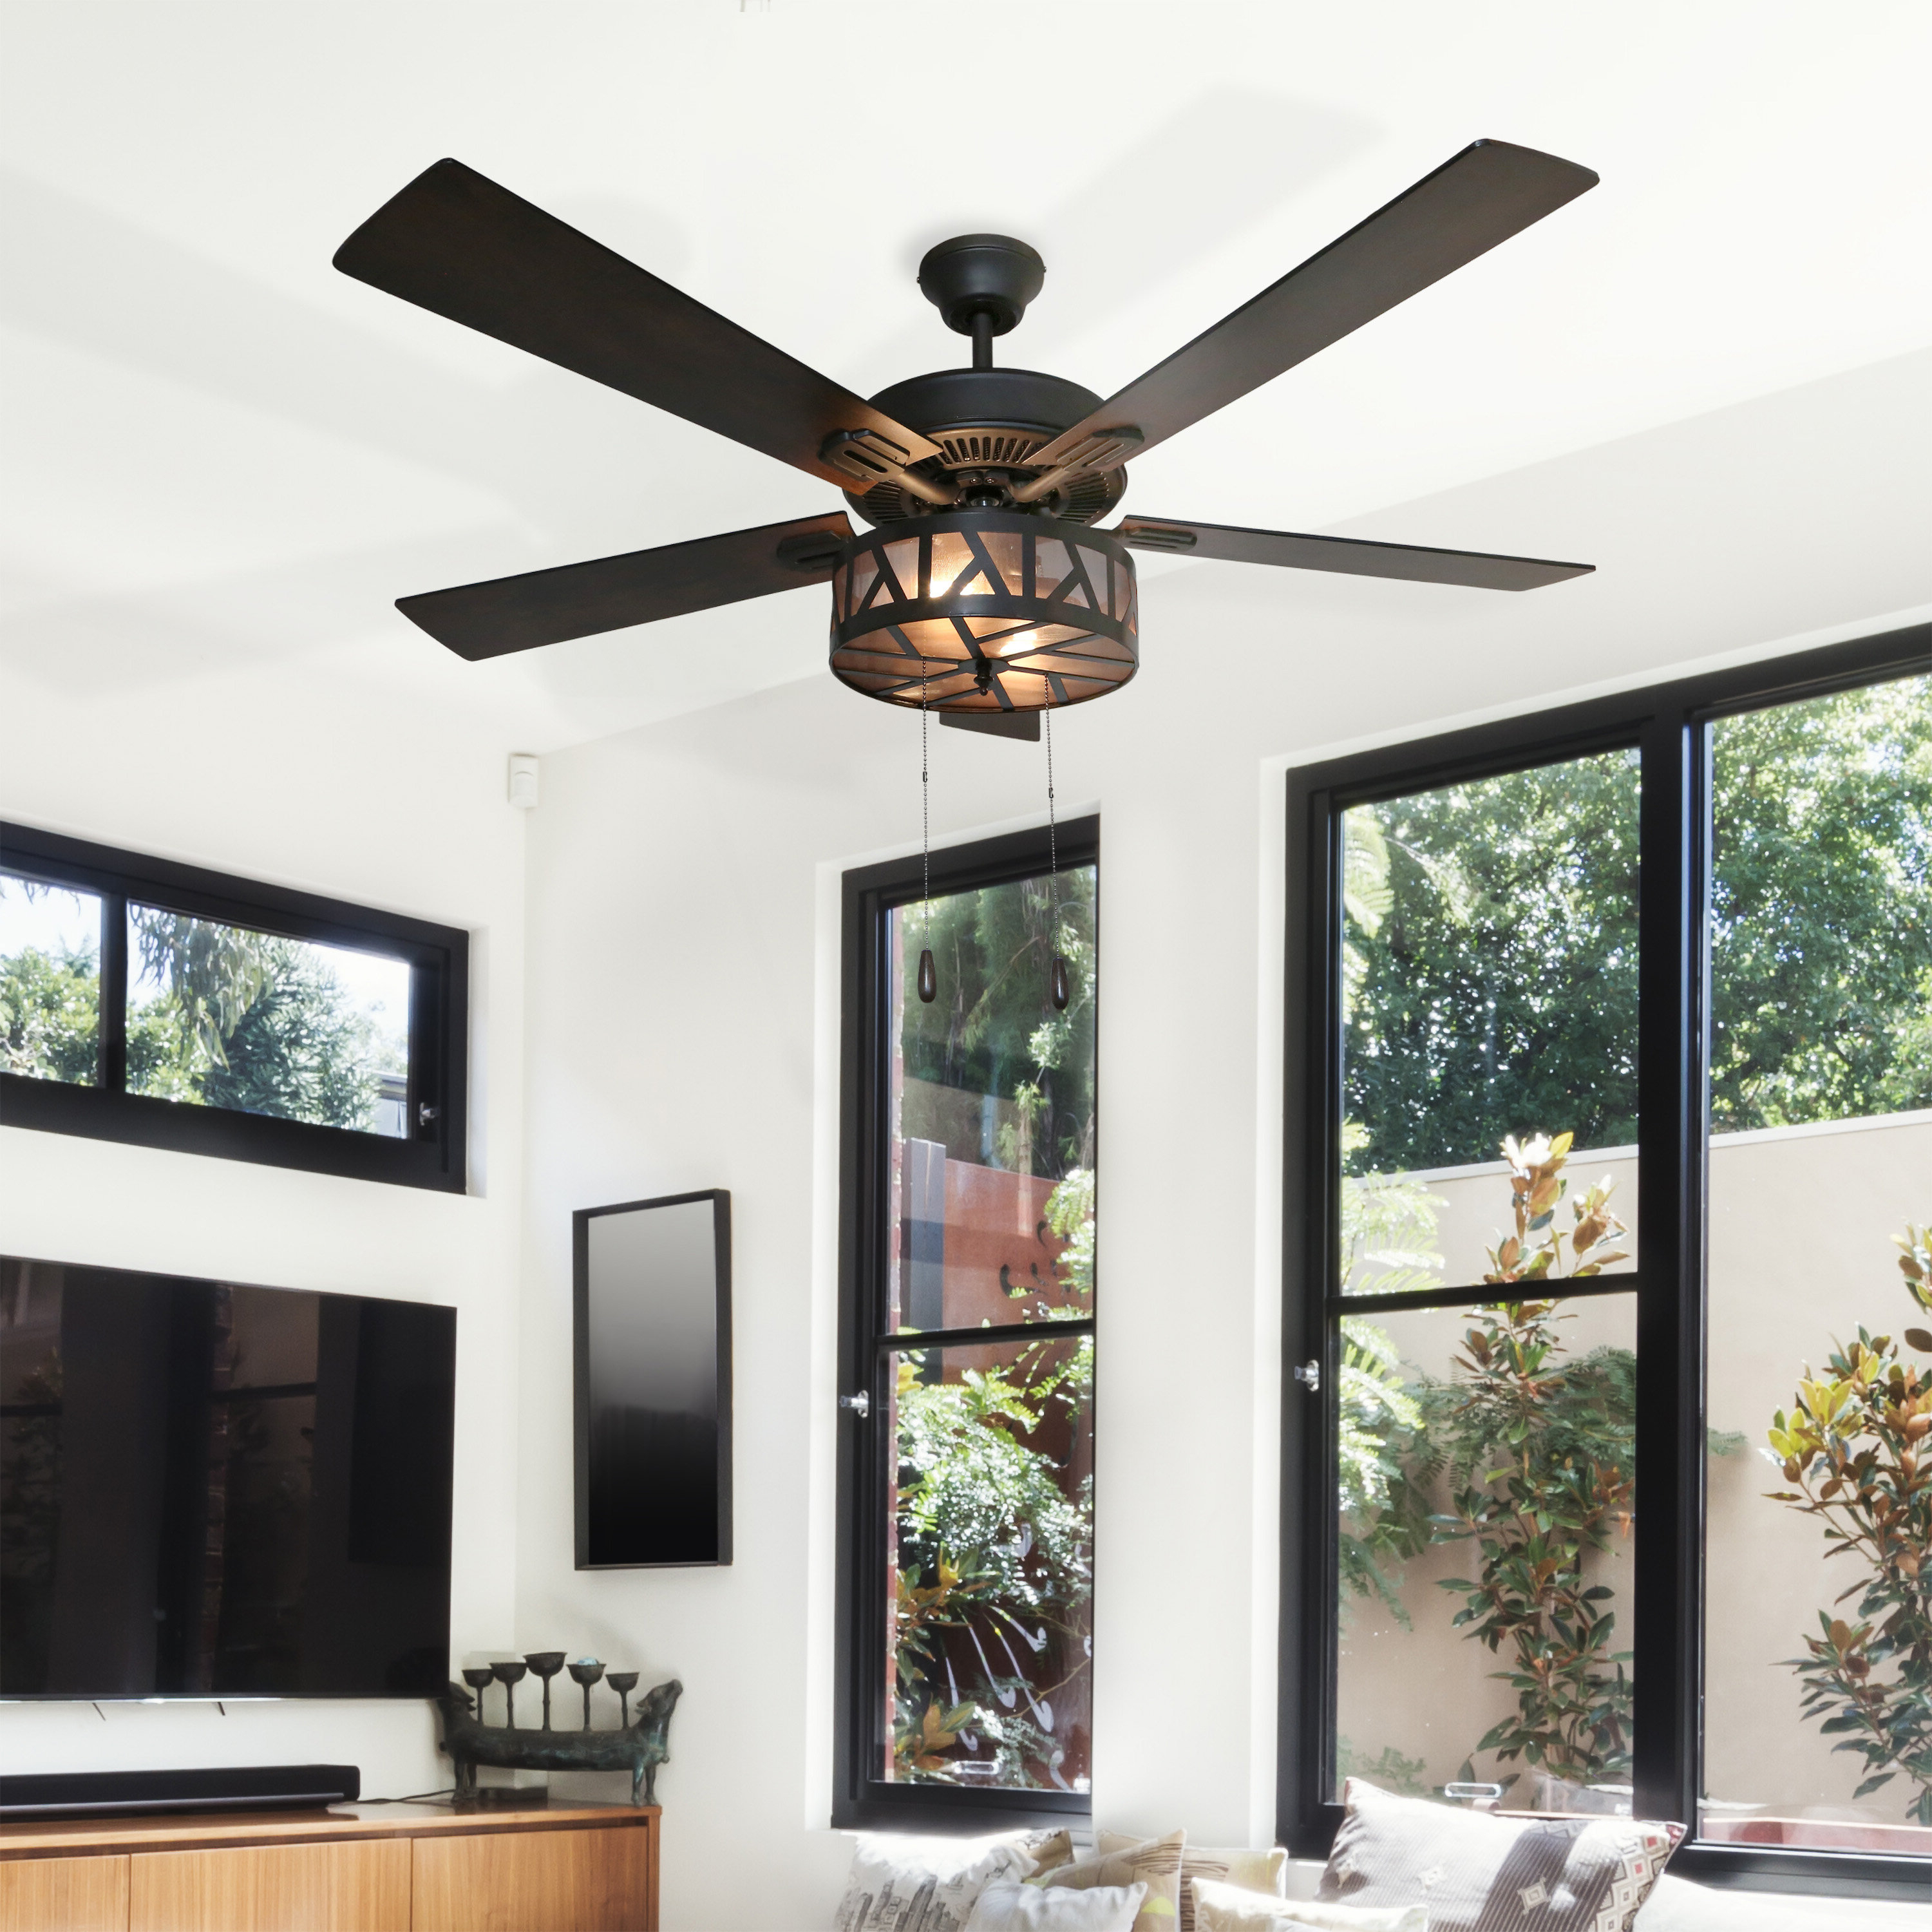 "Well Known Cillian 6 Blade Ceiling Fans Throughout 52"" Brinker Urban Caged 5 Blade Ceiling Fan With Remote, Light Kit Included (View 19 of 20)"